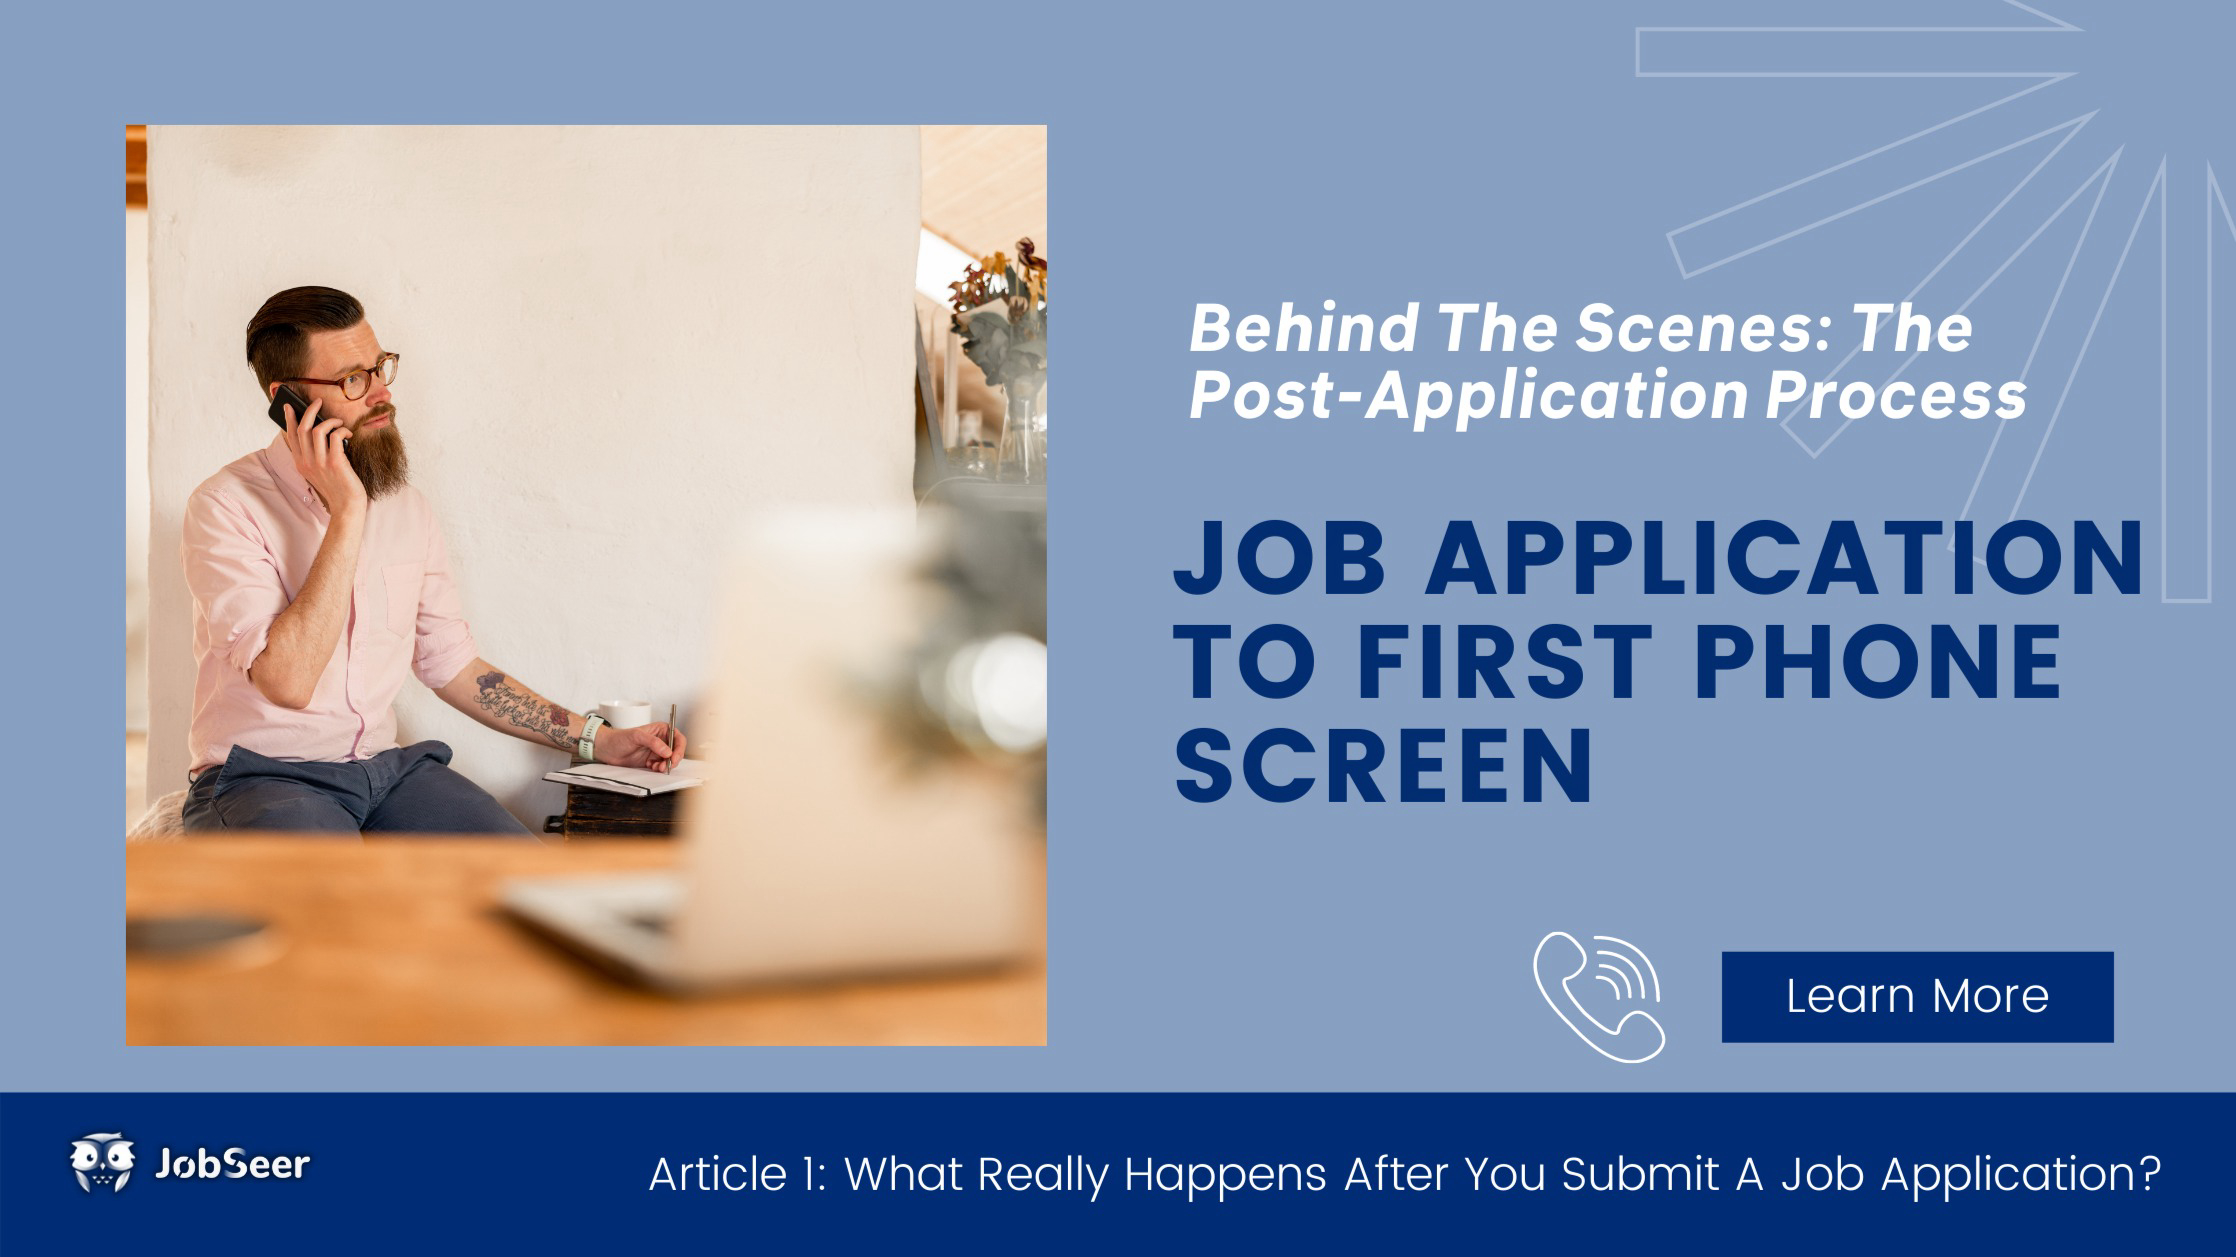 behind-the-scenes-the-post-application-process-job-application-to-first-phone-screen